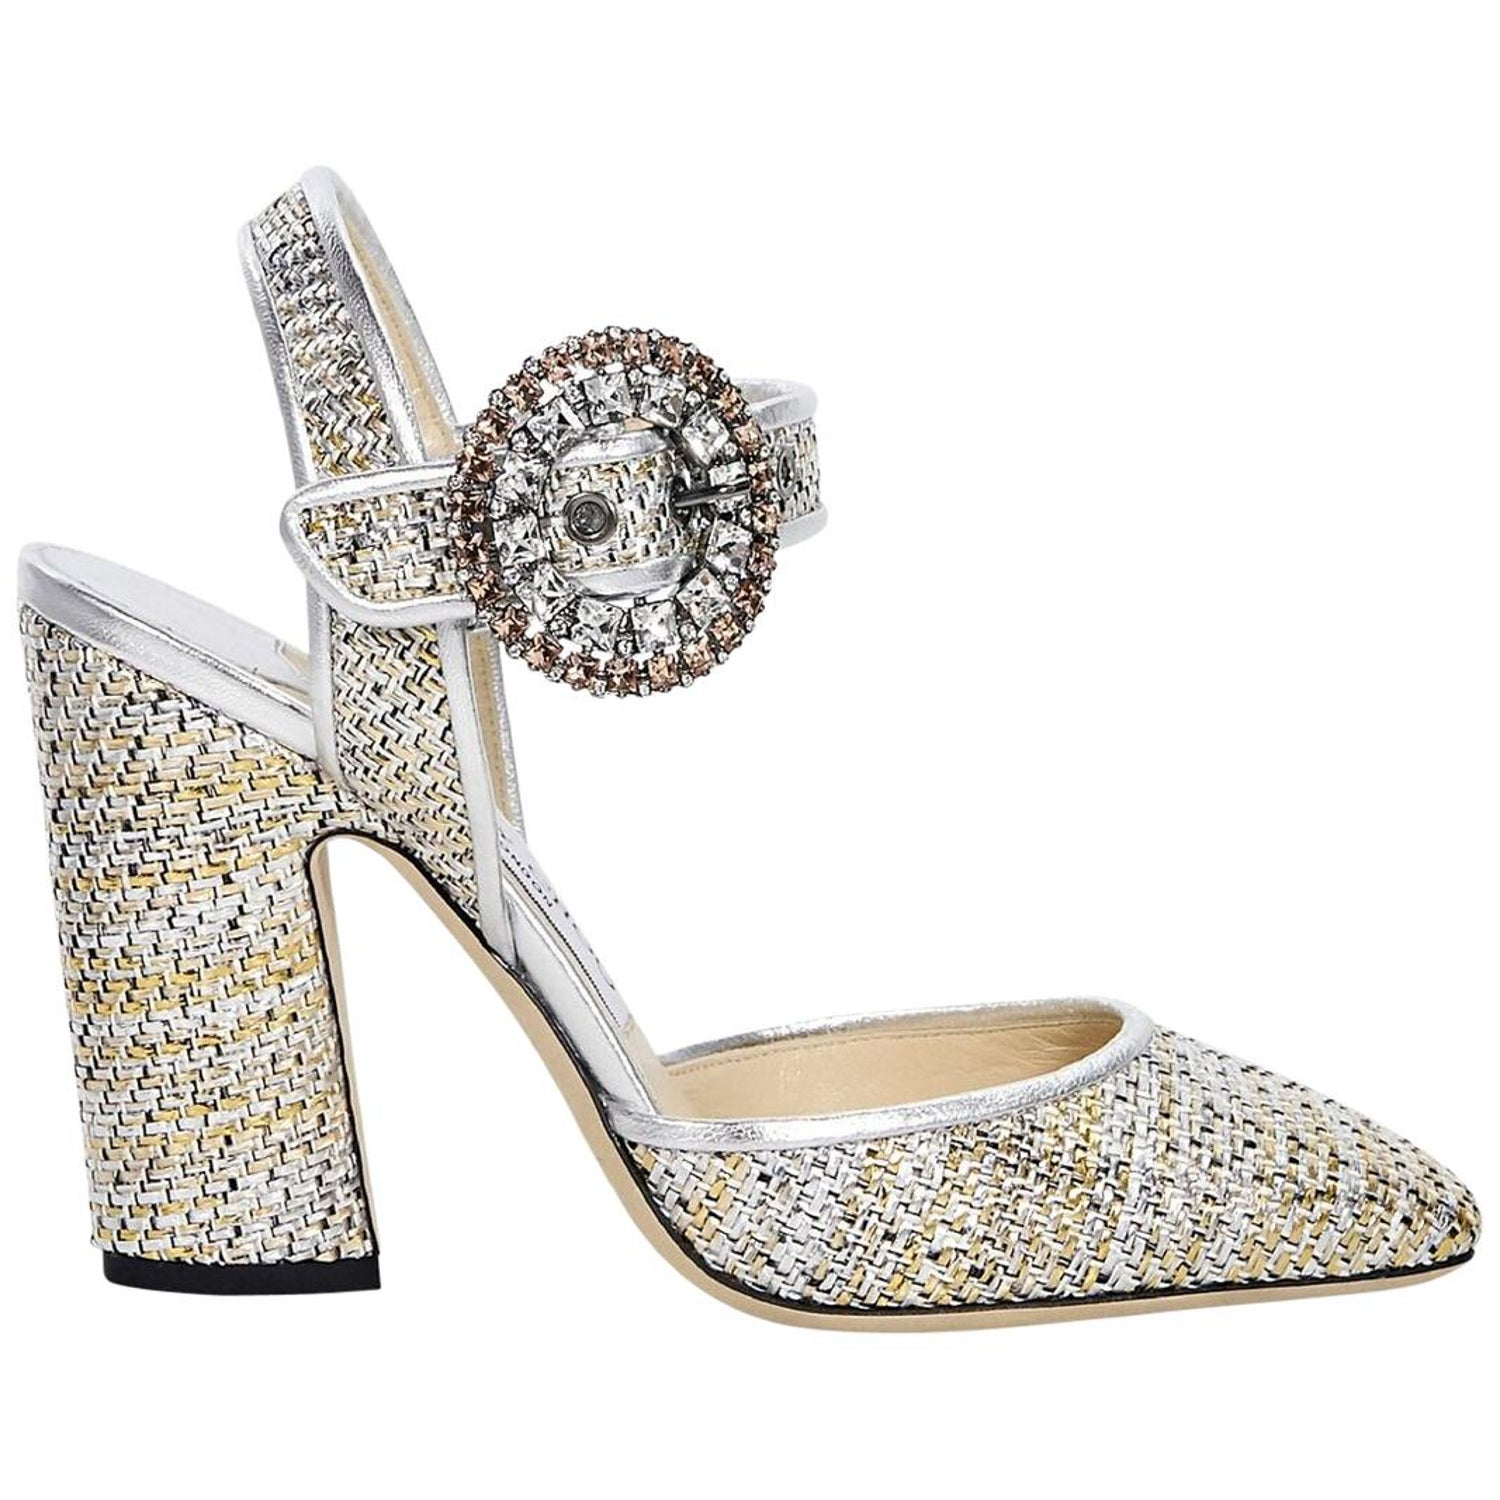 8be9bc28aa91 Metallic Silver and Gold Jimmy Choo Woven Pumps For Sale at 1stdibs